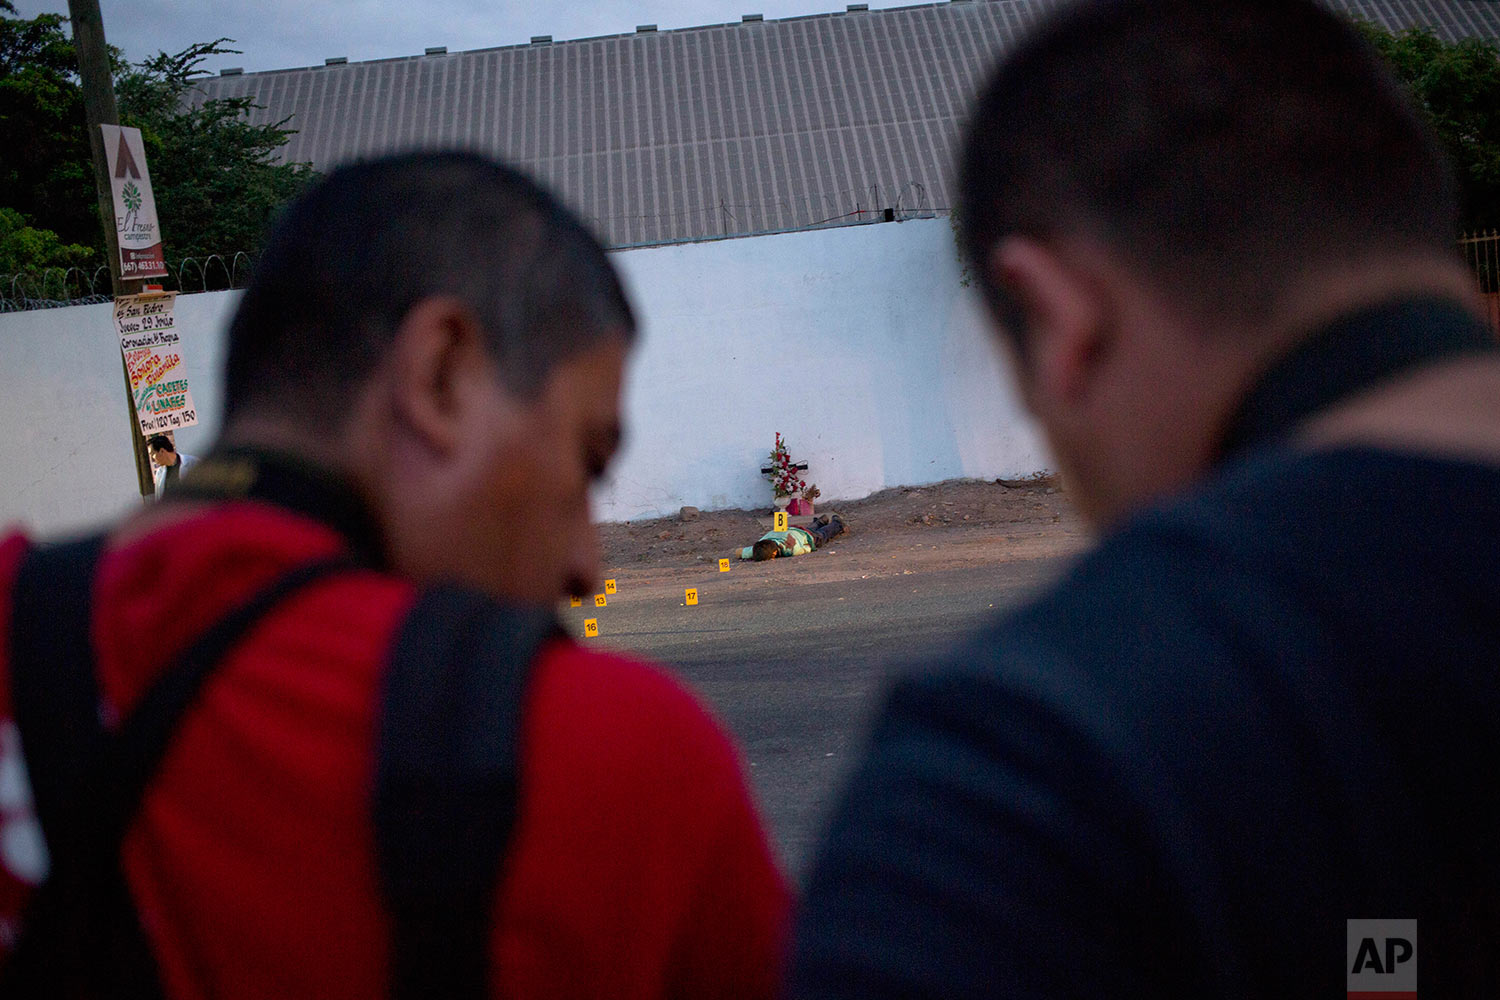 """In this June 29, 2017 photo, journalists report from the site where three bullet ridden bodies were found in Navolato, on the outskirts of Culiacan, Sinaloa state, Mexico. Sinaloa is home to the cartel of the same name that was long run by notorious kingpin Joaquin """"El Chapo"""" Guzman. Since Guzman's arrest last year and extradition to the United States in January, Sinaloa has been one of the country's bloodiest battlegrounds as rival factions fight to fill the vacuum. (AP Photo/Enric Marti)"""